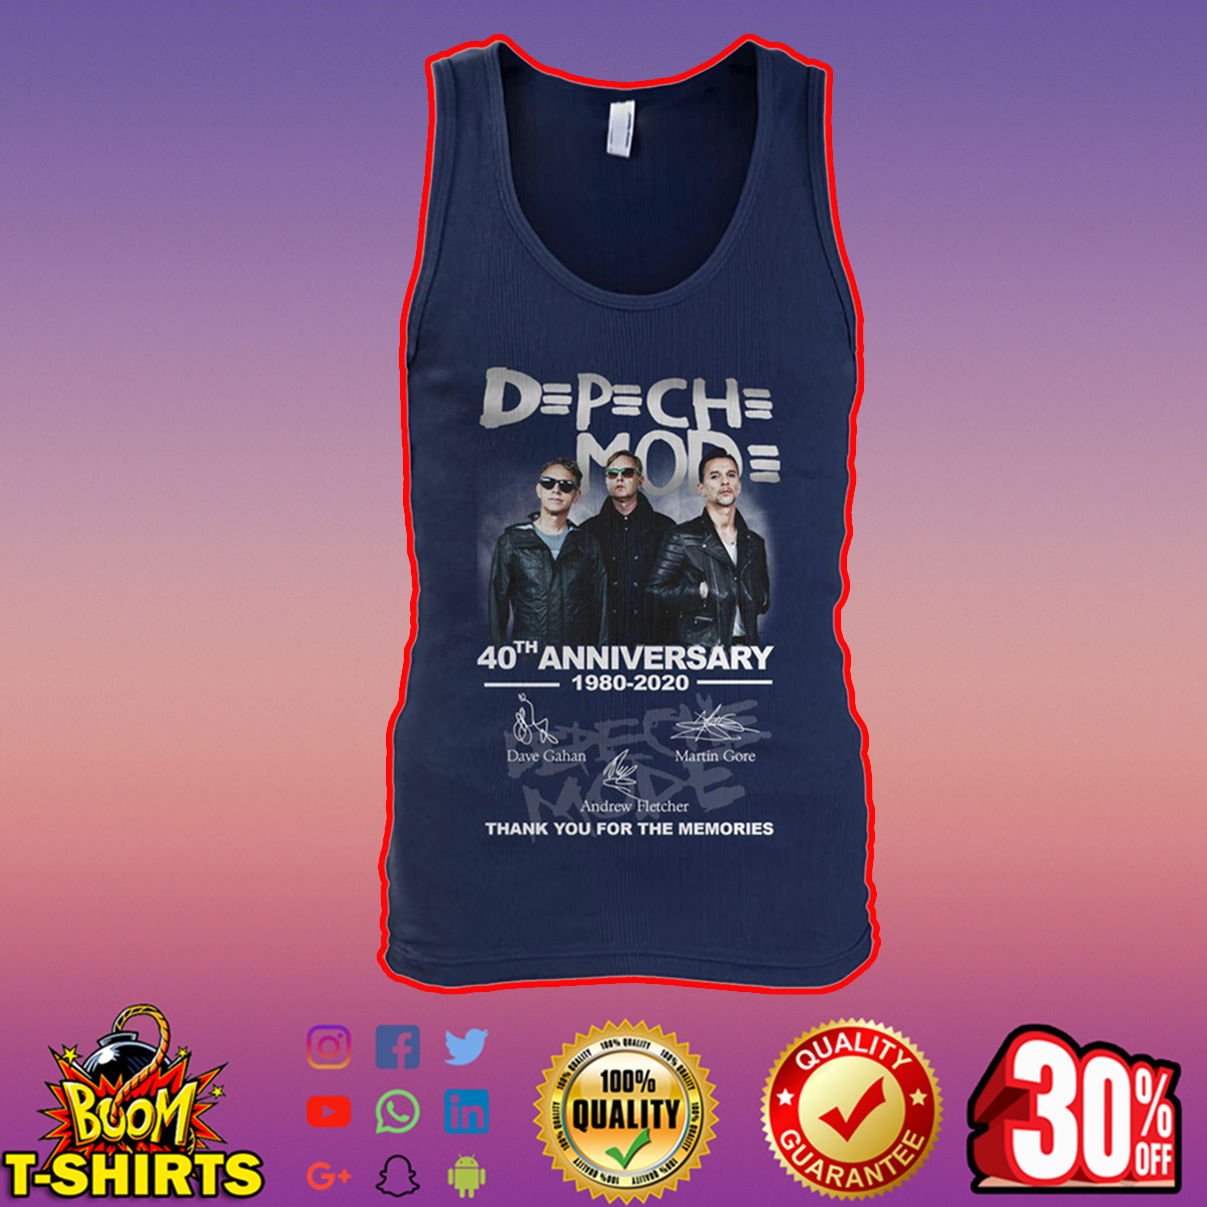 DPCH MOD 40th Anniversary 1980 2020 Thank You For The Memories Signature tank top